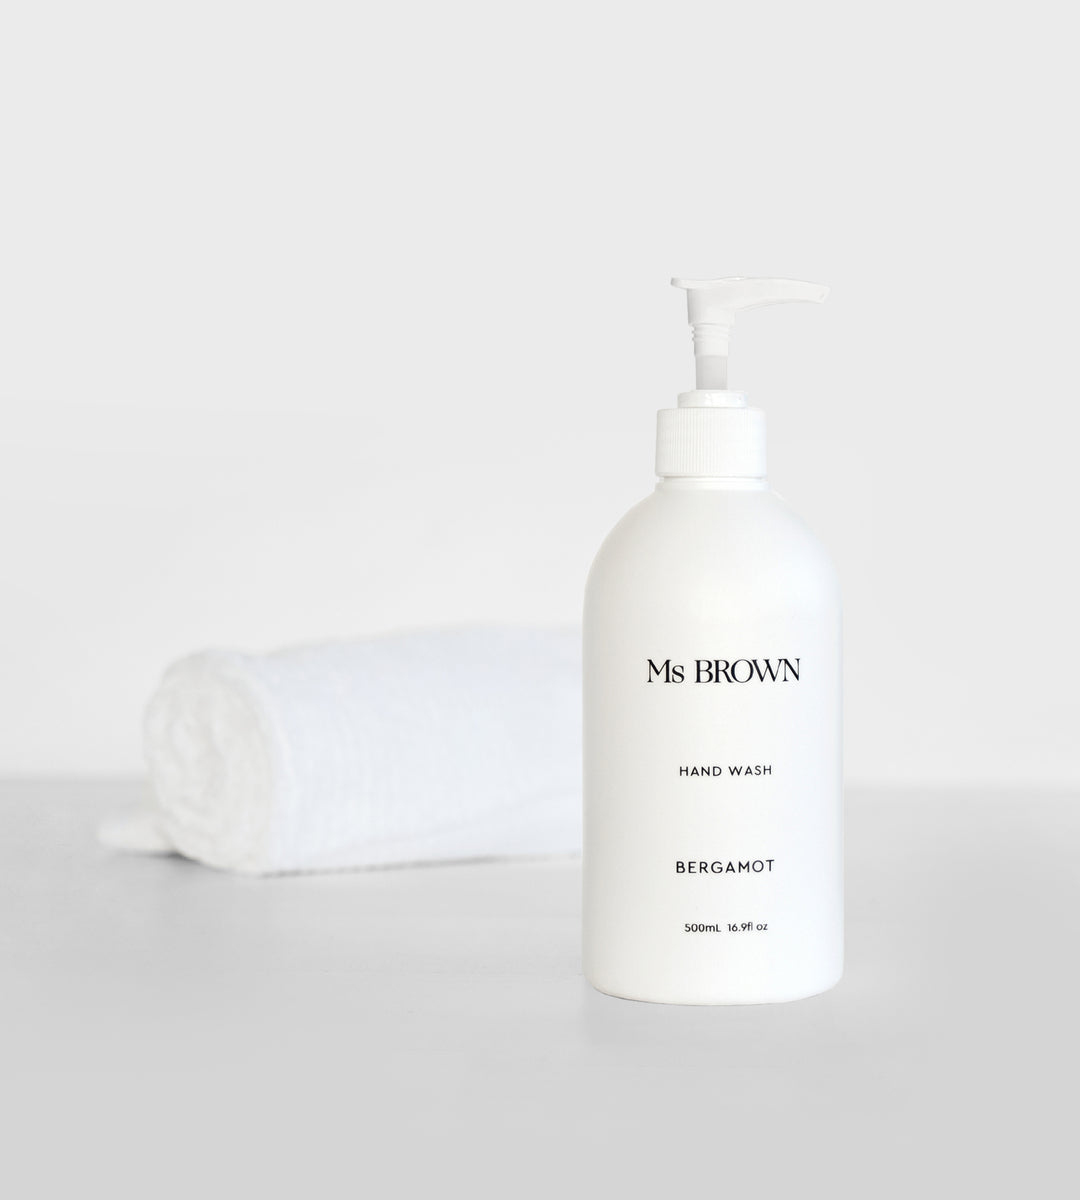 Ms Brown | Hand Wash 500ml | Bergamot